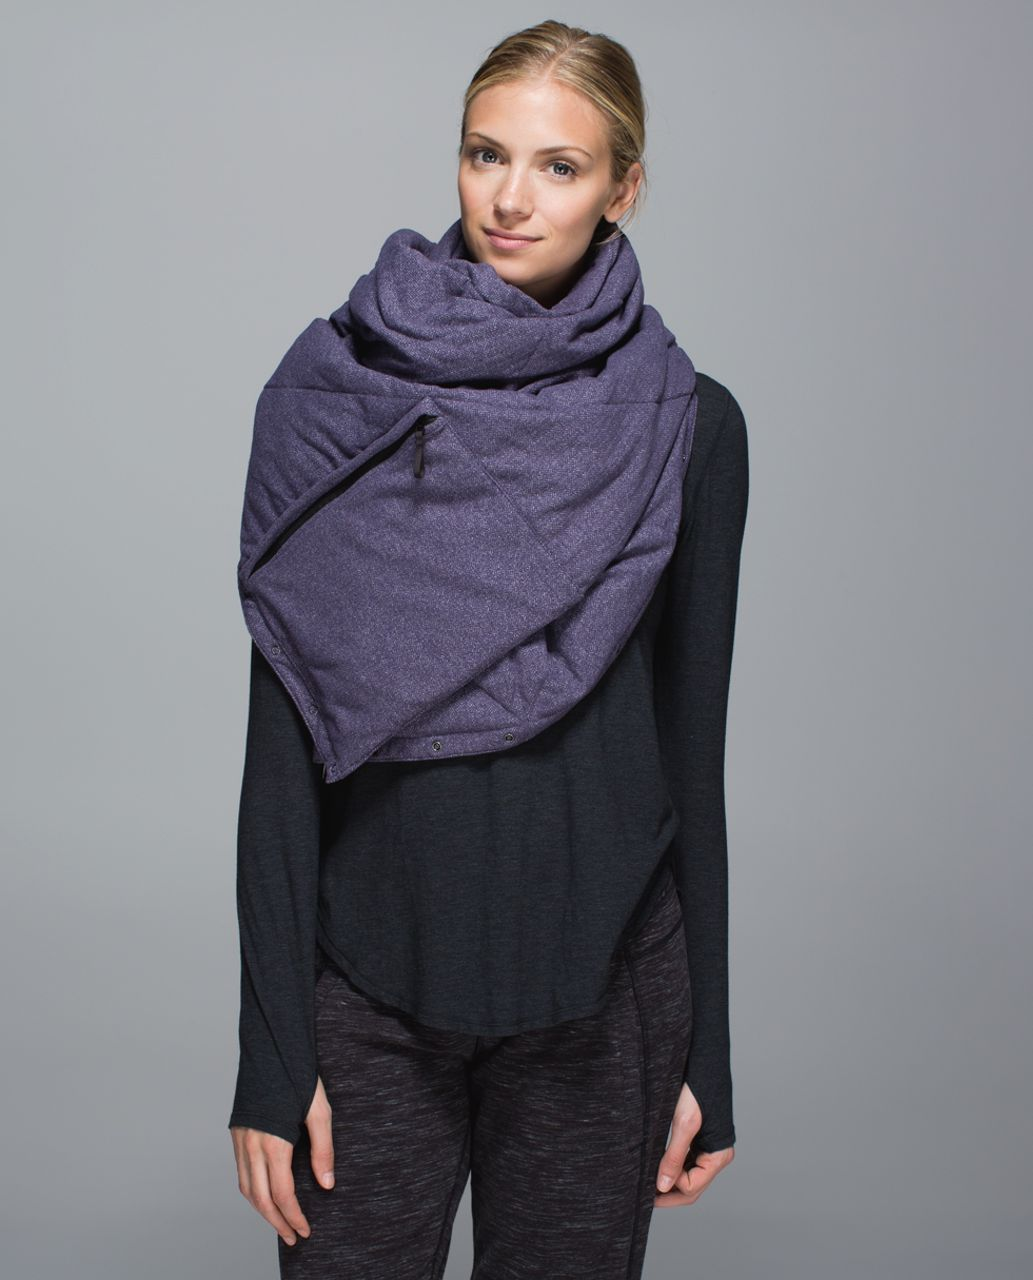 Lululemon Fluffed Up Scarf - Stained Glass Love Nightfall Black